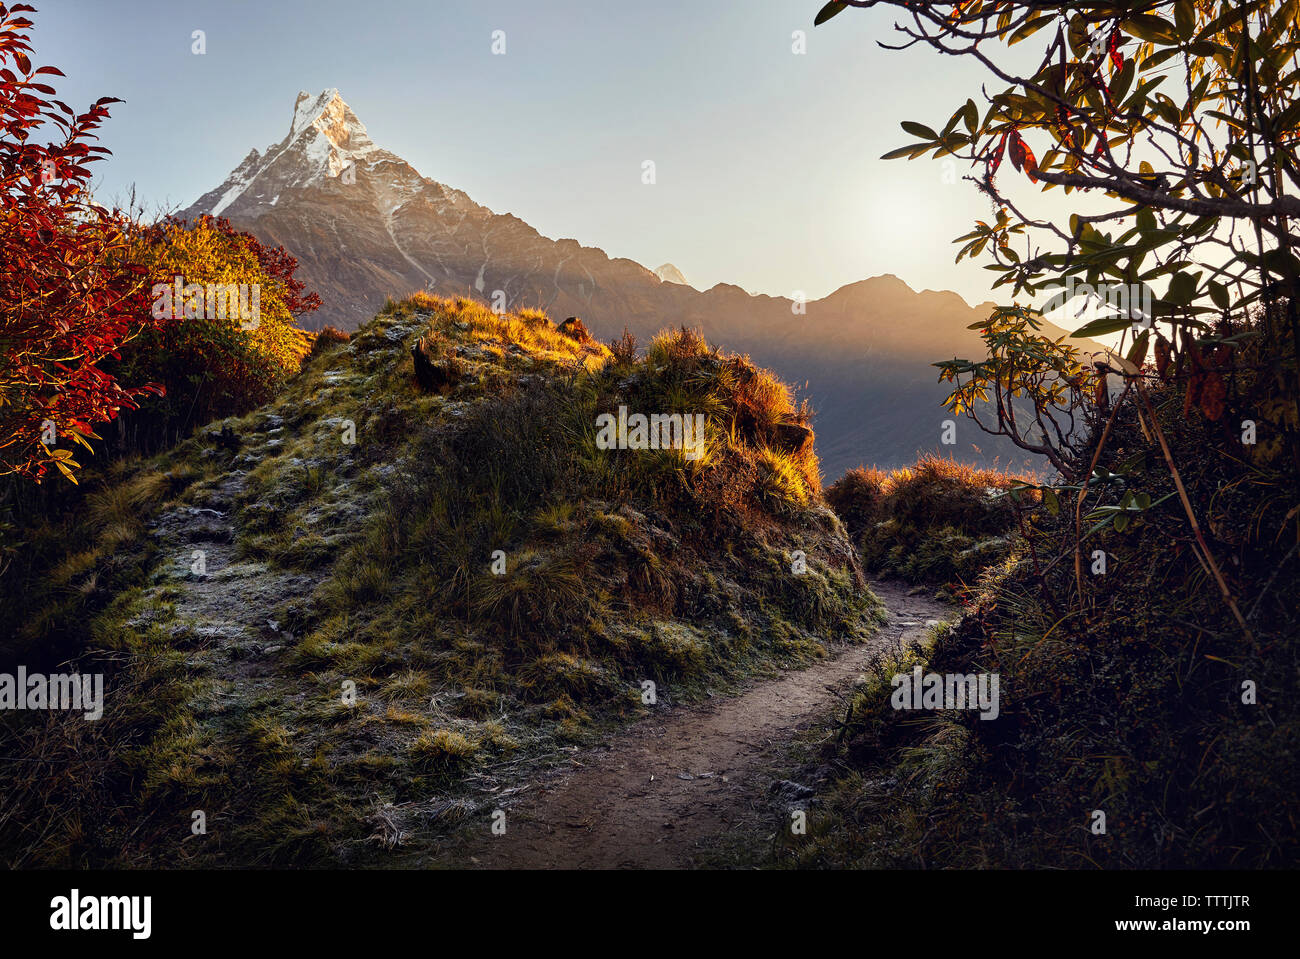 Scenic view of mountains against sky during sunrise at Mardi Himal trek - Stock Image